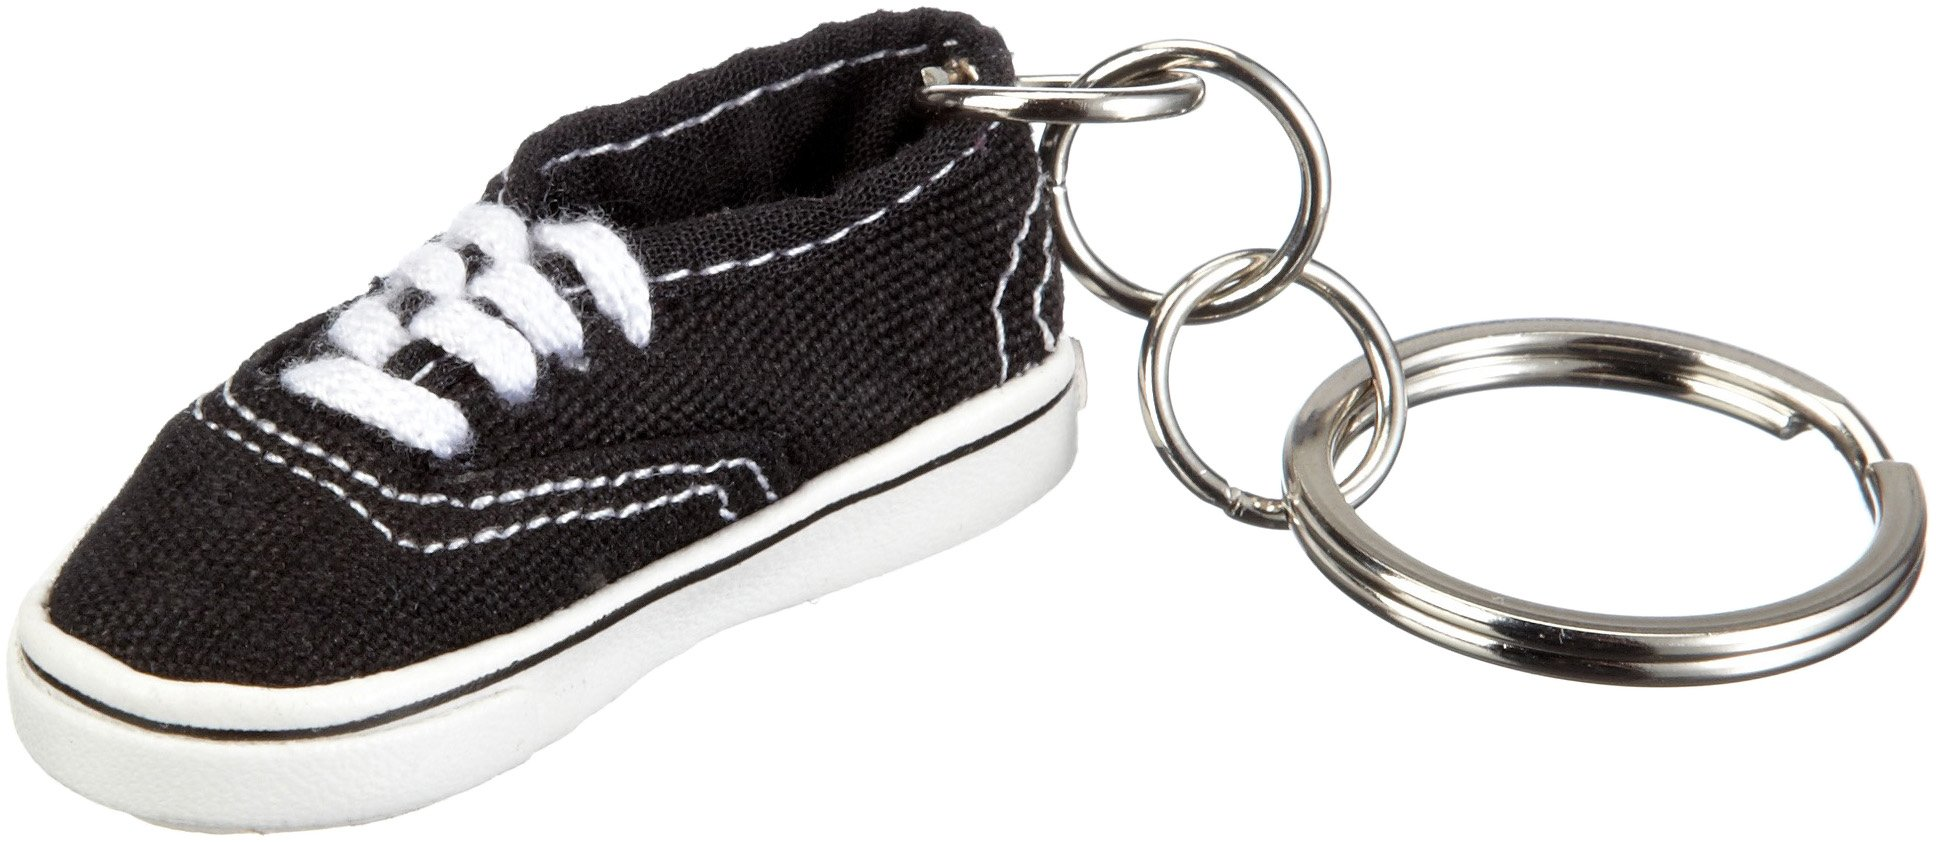 Vans Mens Authentic Keyring One Size Black by VANS